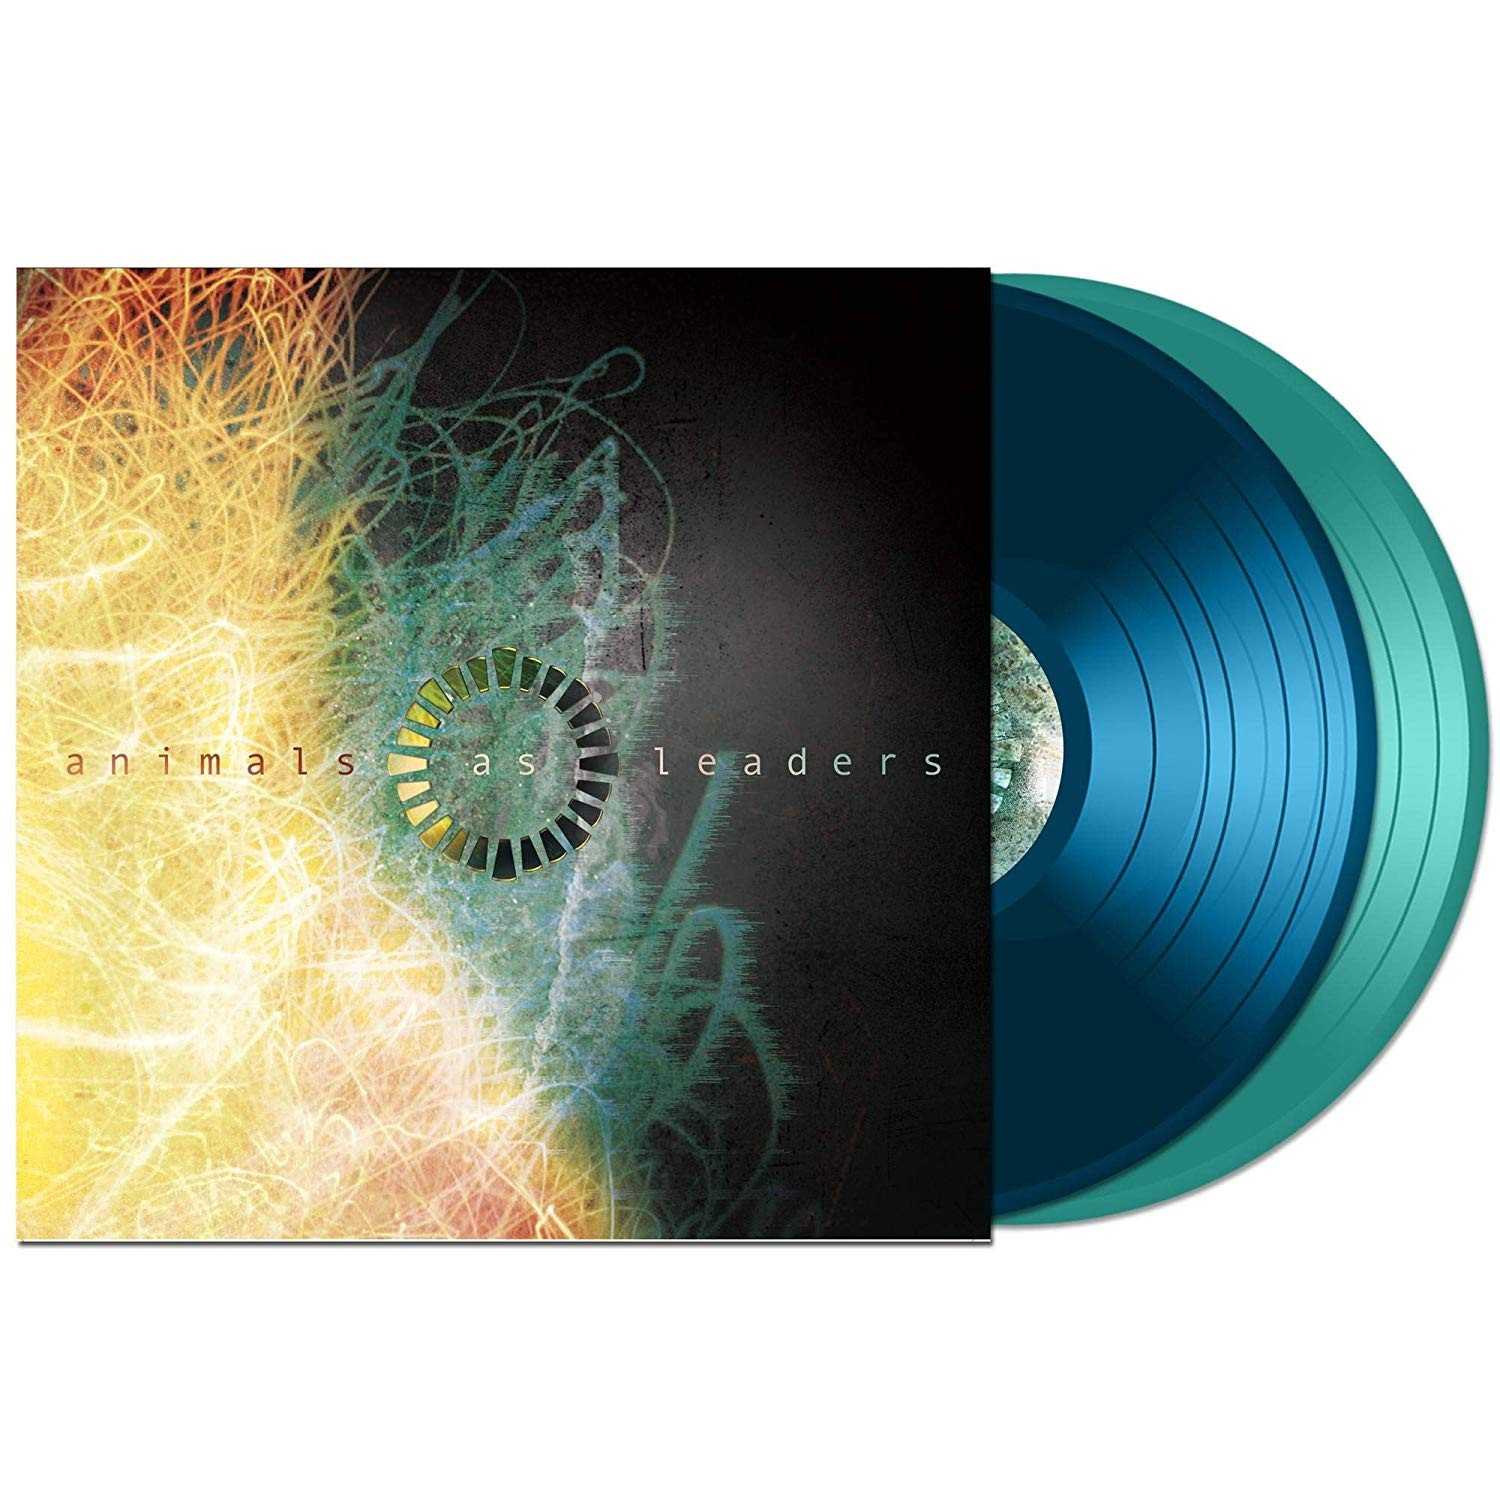 Animals As Leaders - Animals As Leaders (Blue/Green) 2XLP